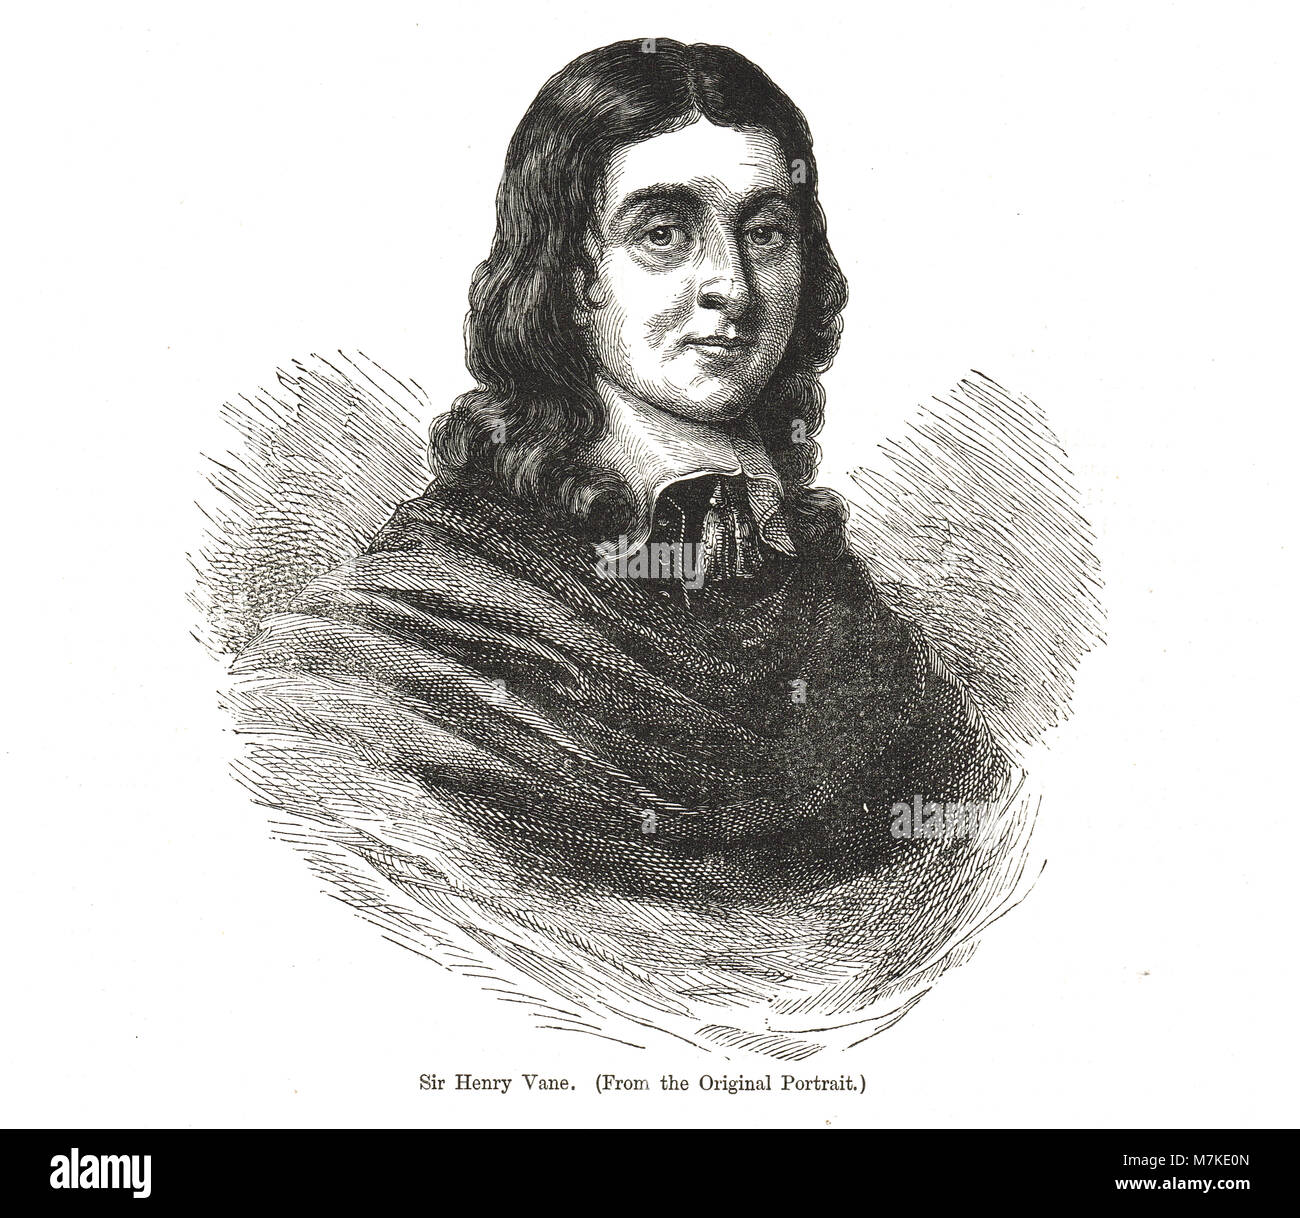 Henry Vane the Younger (1613-1662)  also known as Harry Vane - Stock Image